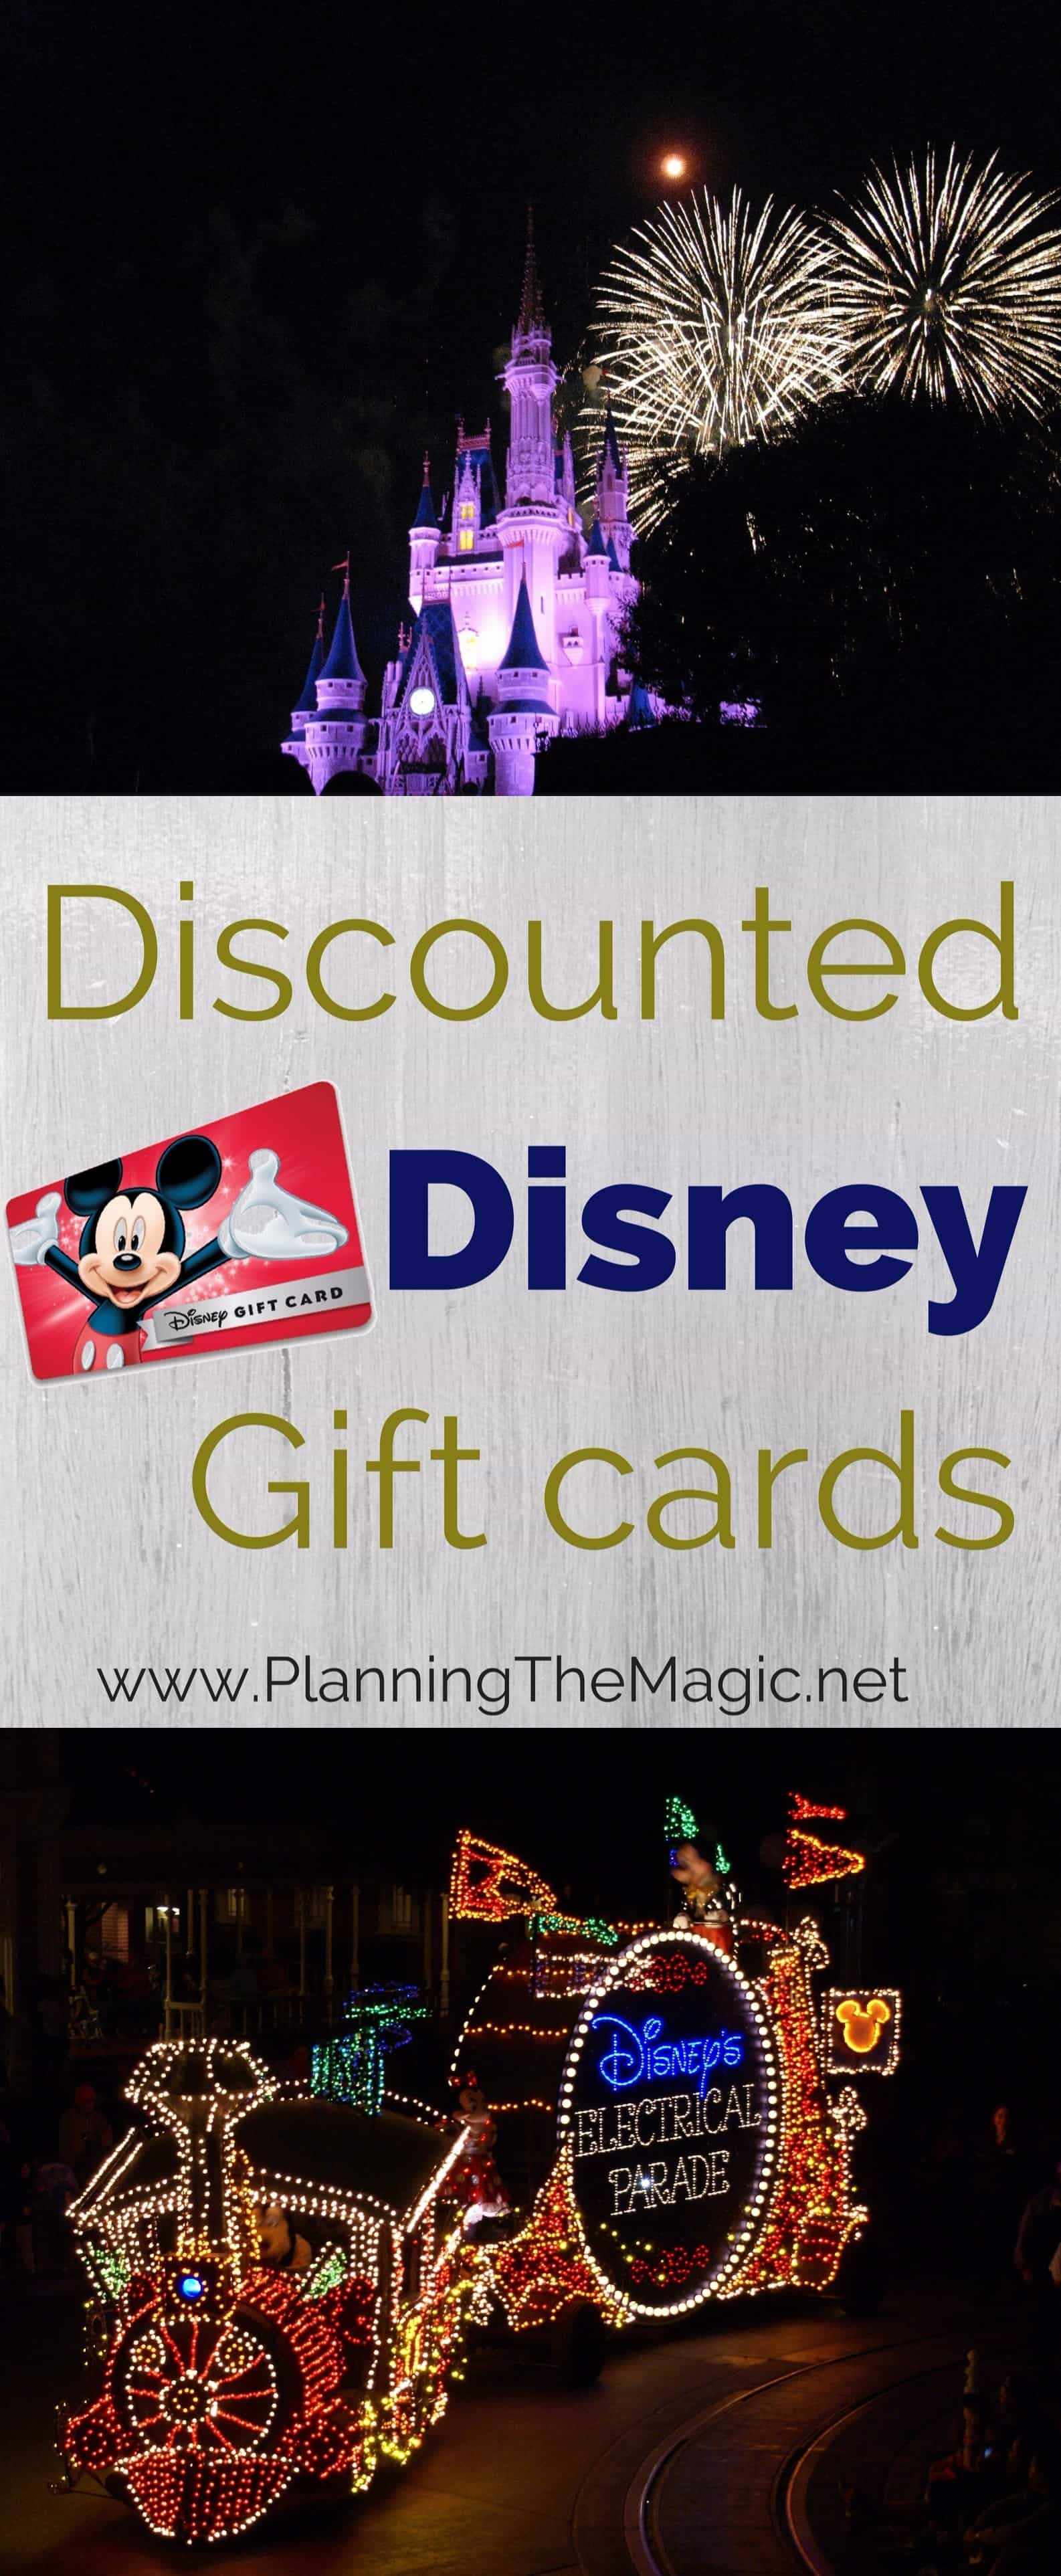 discounted disney gift cards-min